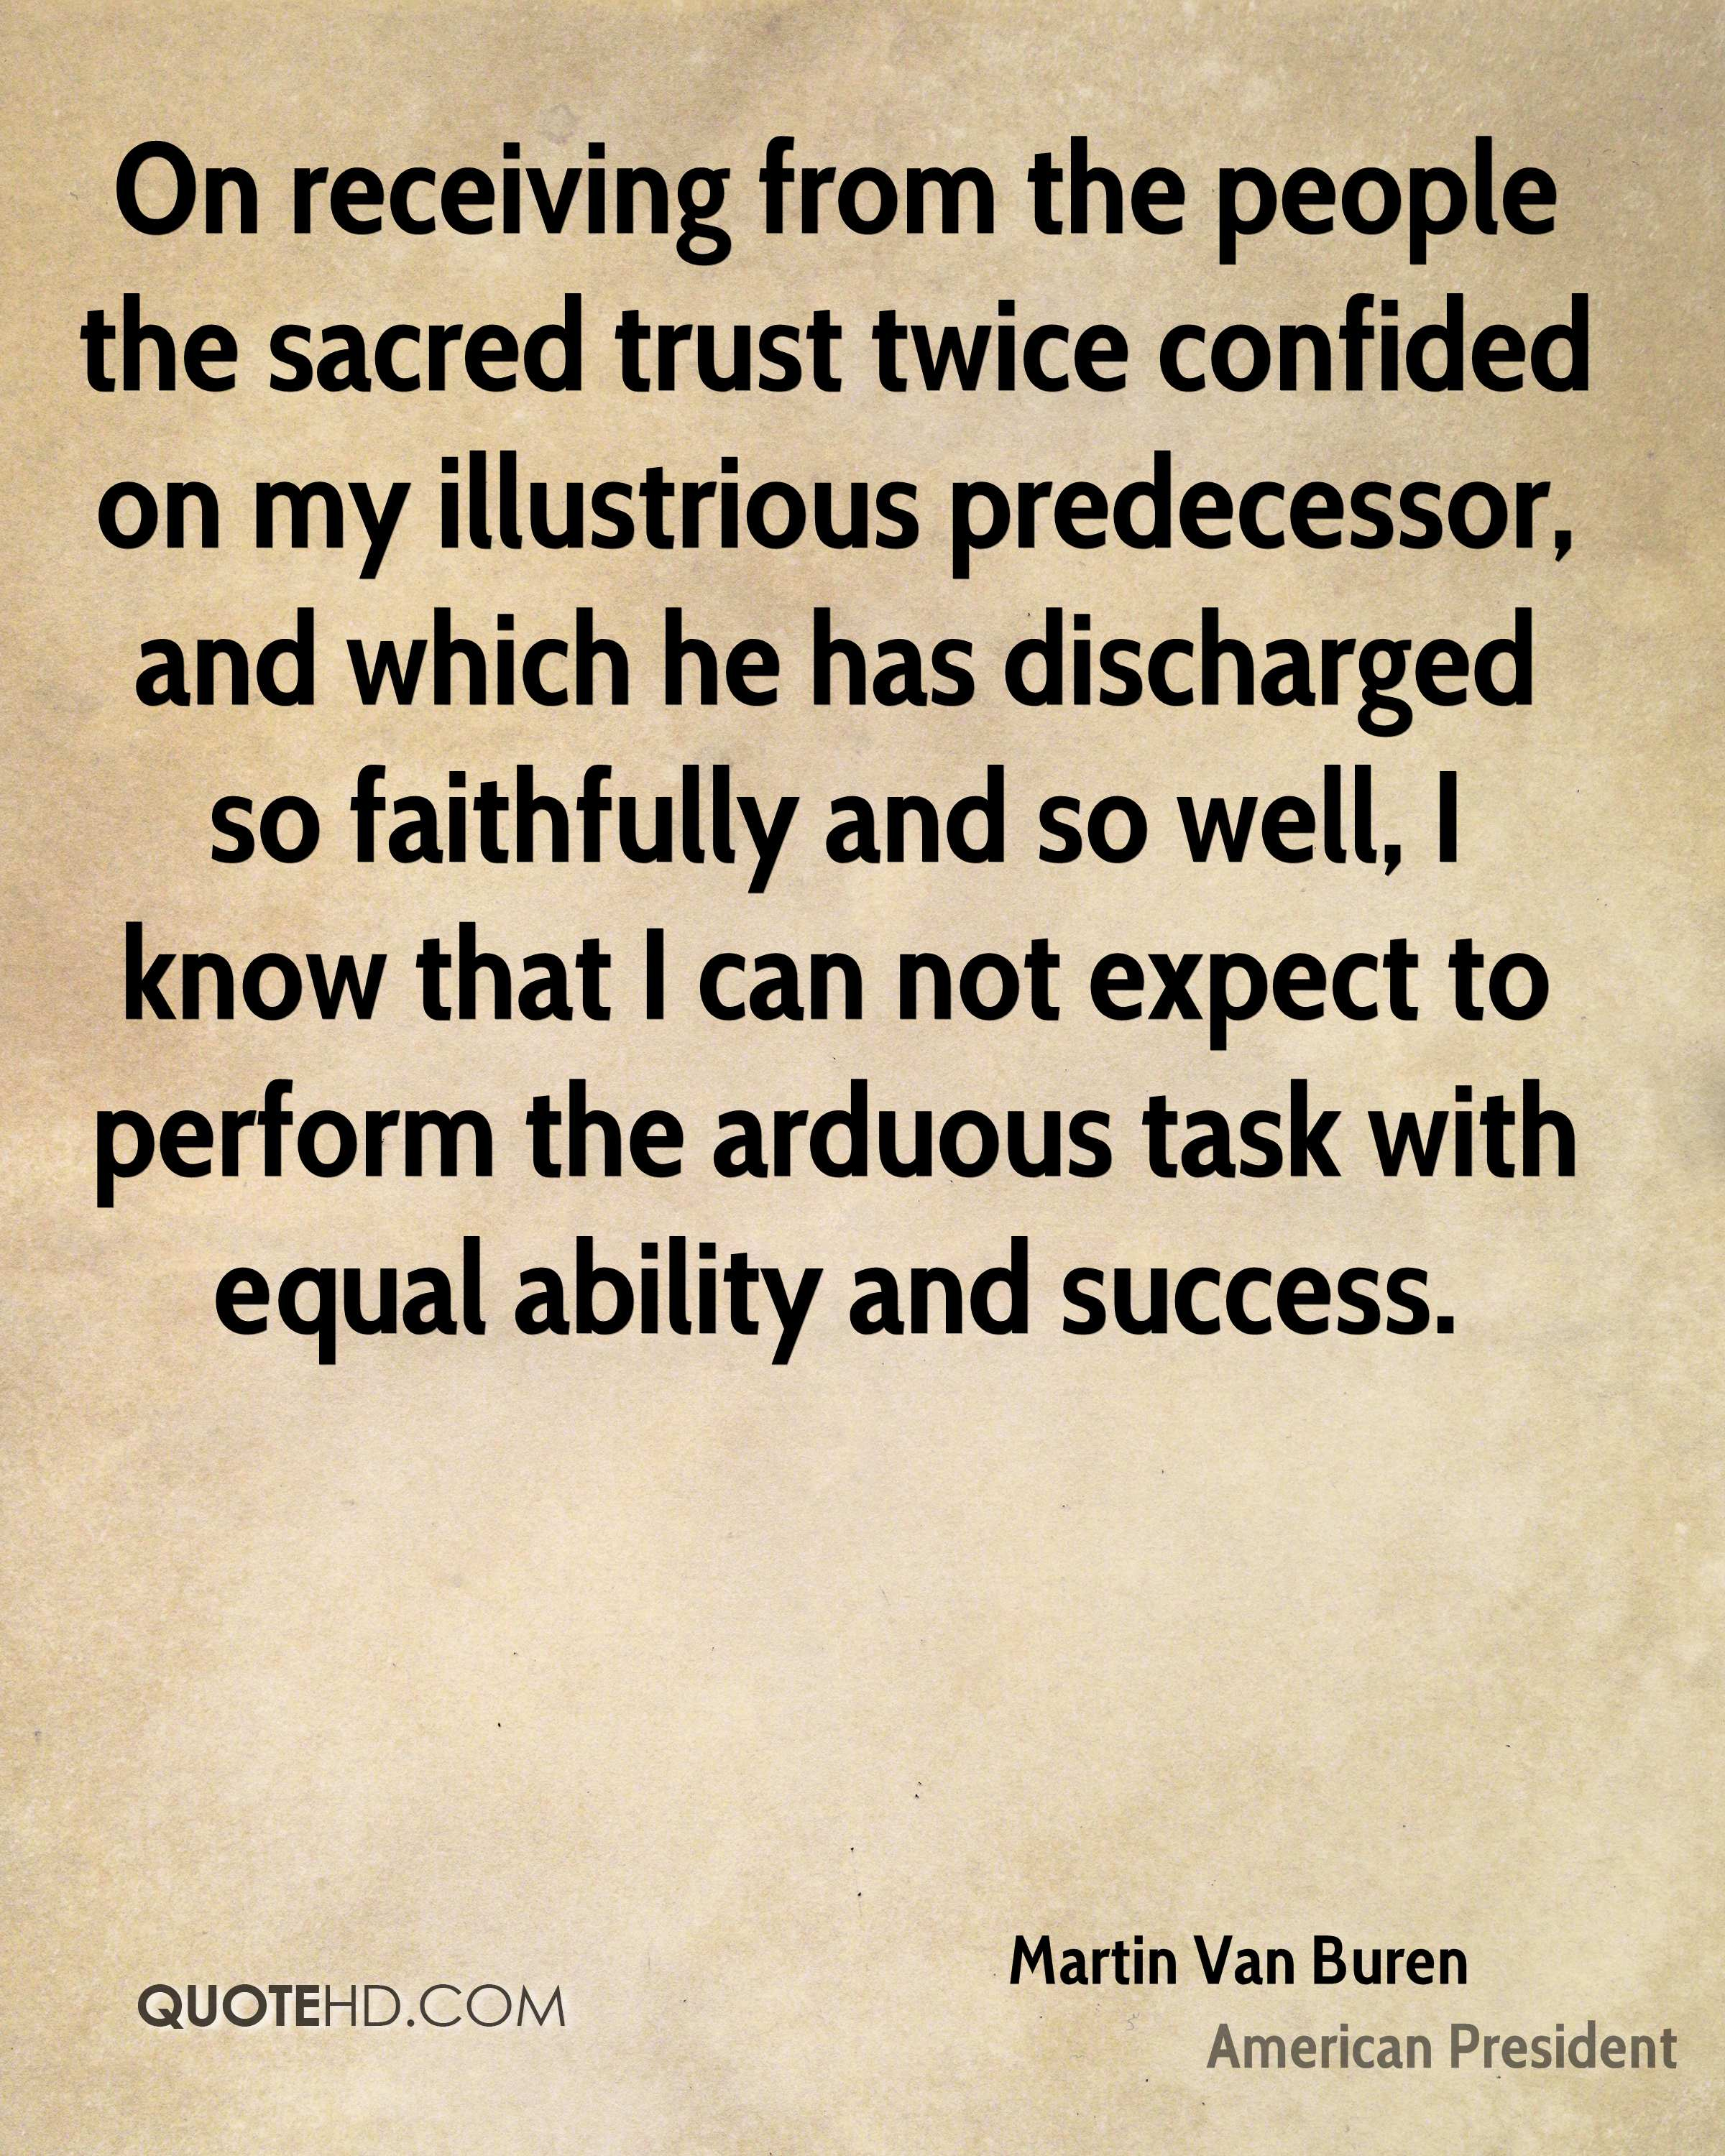 On receiving from the people the sacred trust twice confided on my illustrious predecessor, and which he has discharged so faithfully and so well, I know that I can not expect to perform the arduous task with equal ability and success.